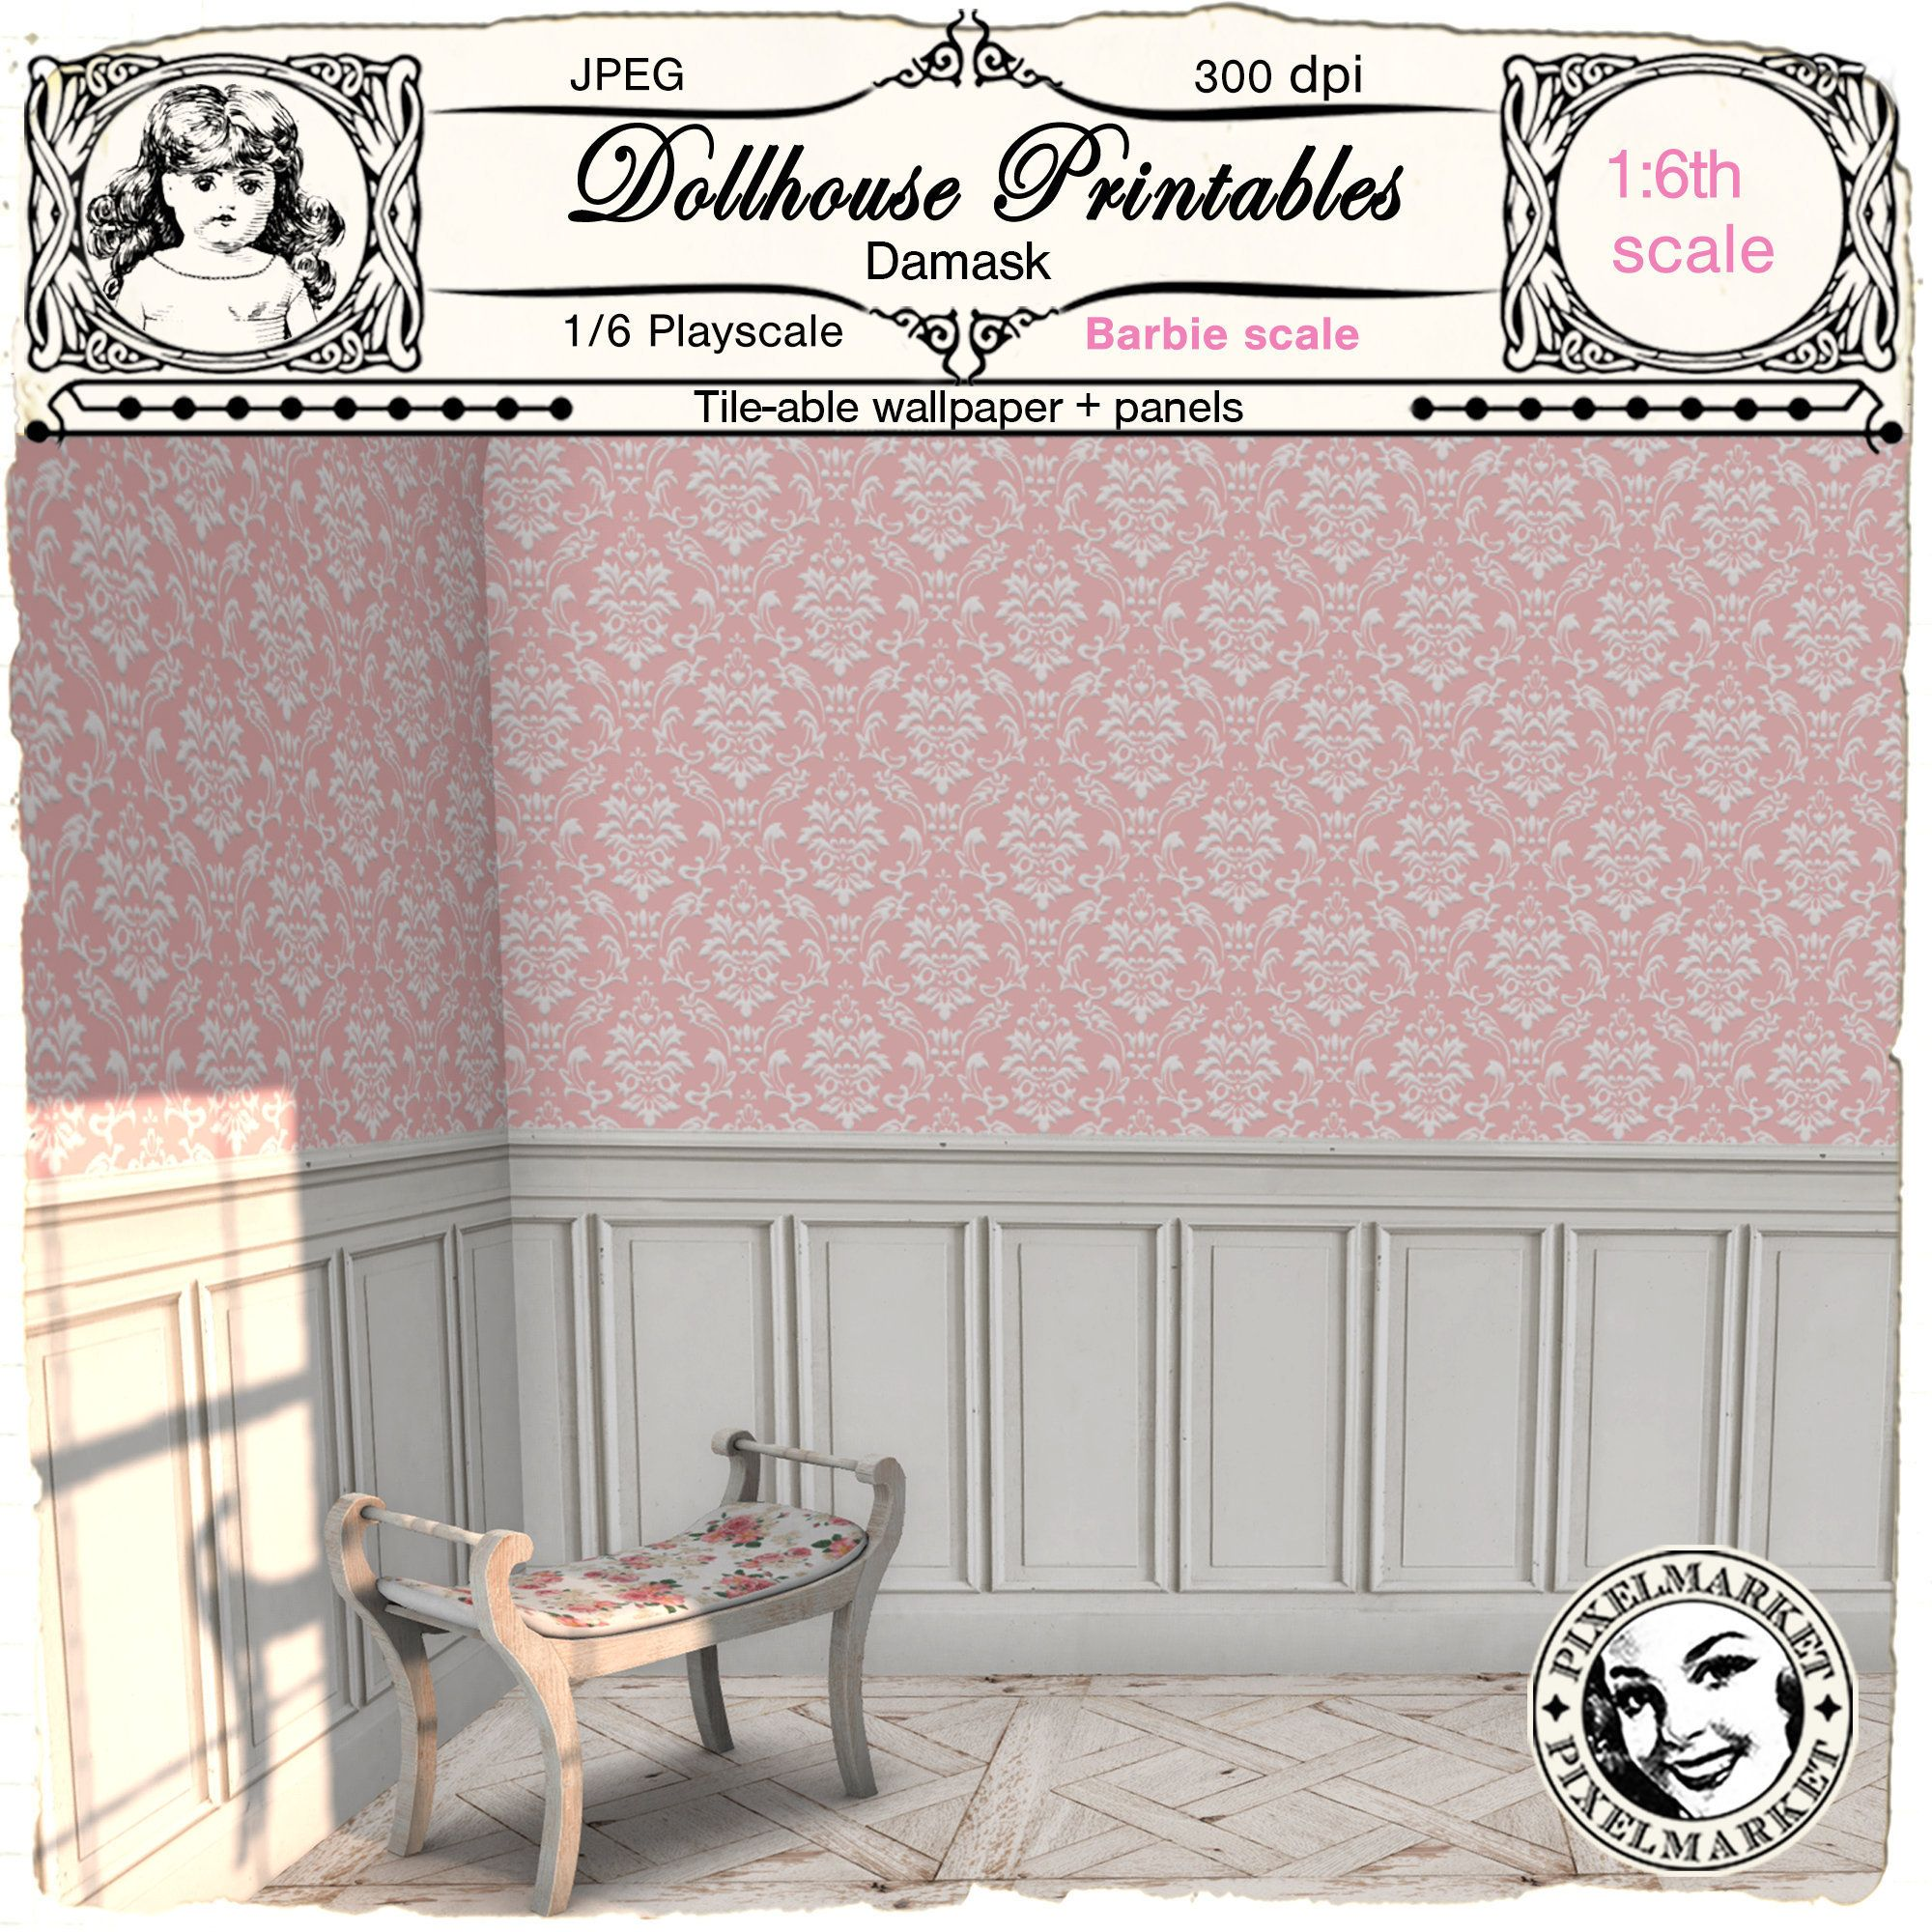 Dollhouse Printable Wallpaper And Wainscoting Pink Damask Wall Etsy Doll House Wallpaper Doll House Victorian Dollhouse Miniatures